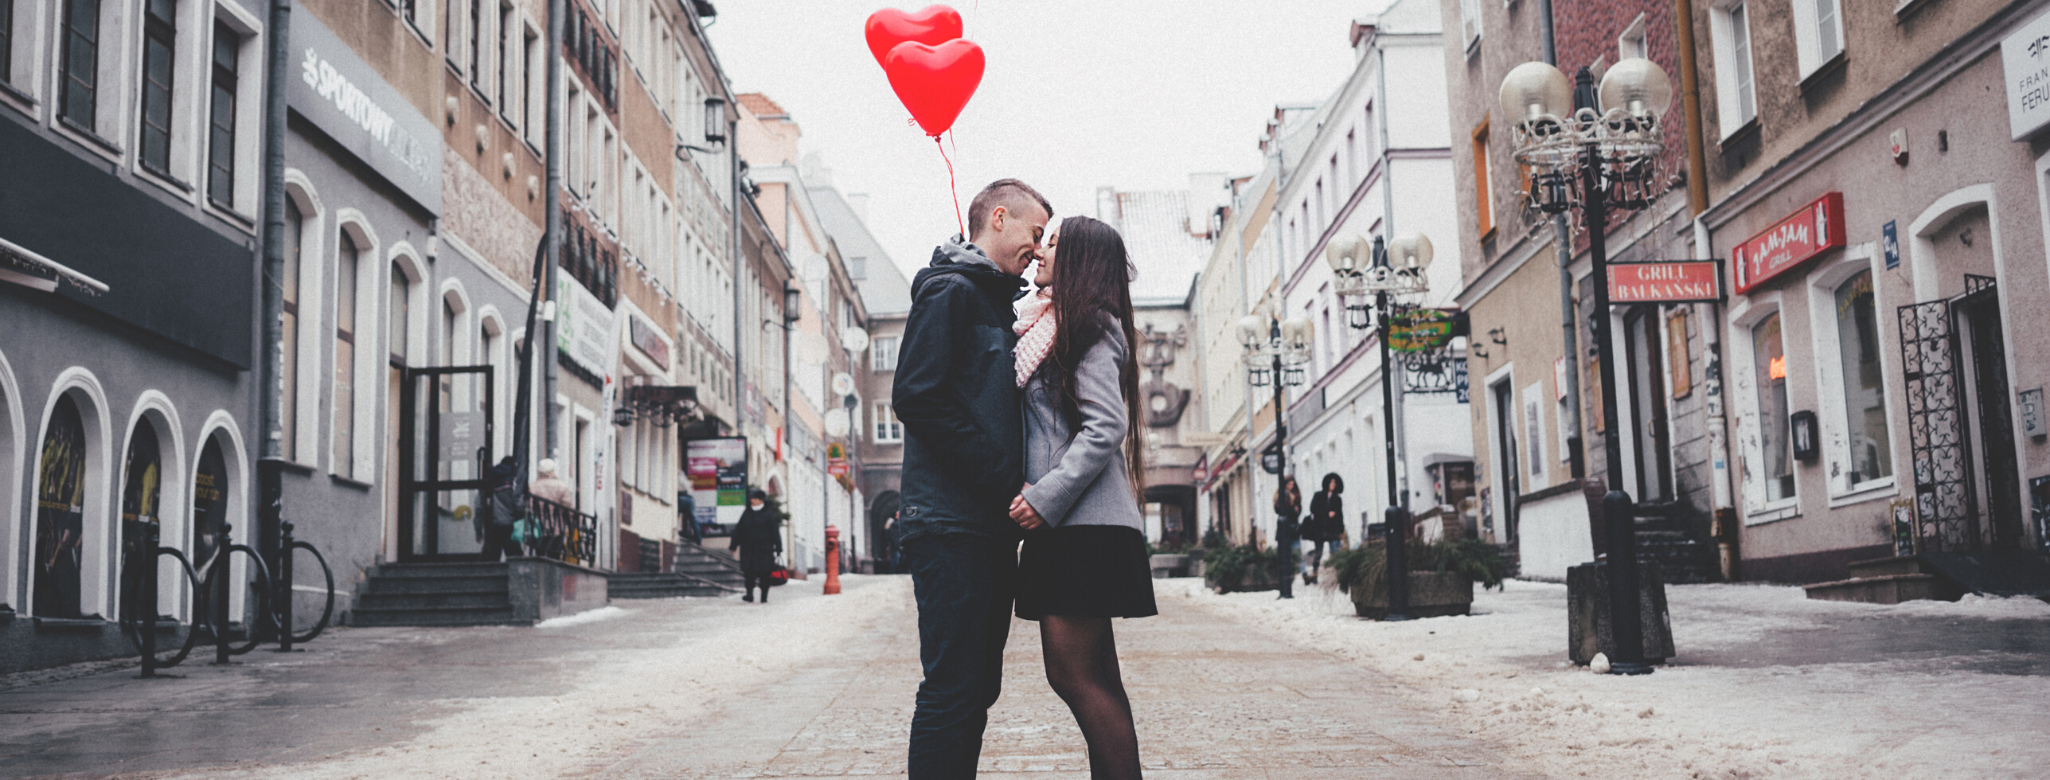 Lost Love Spells In Uk - Love spells that hold such amazing